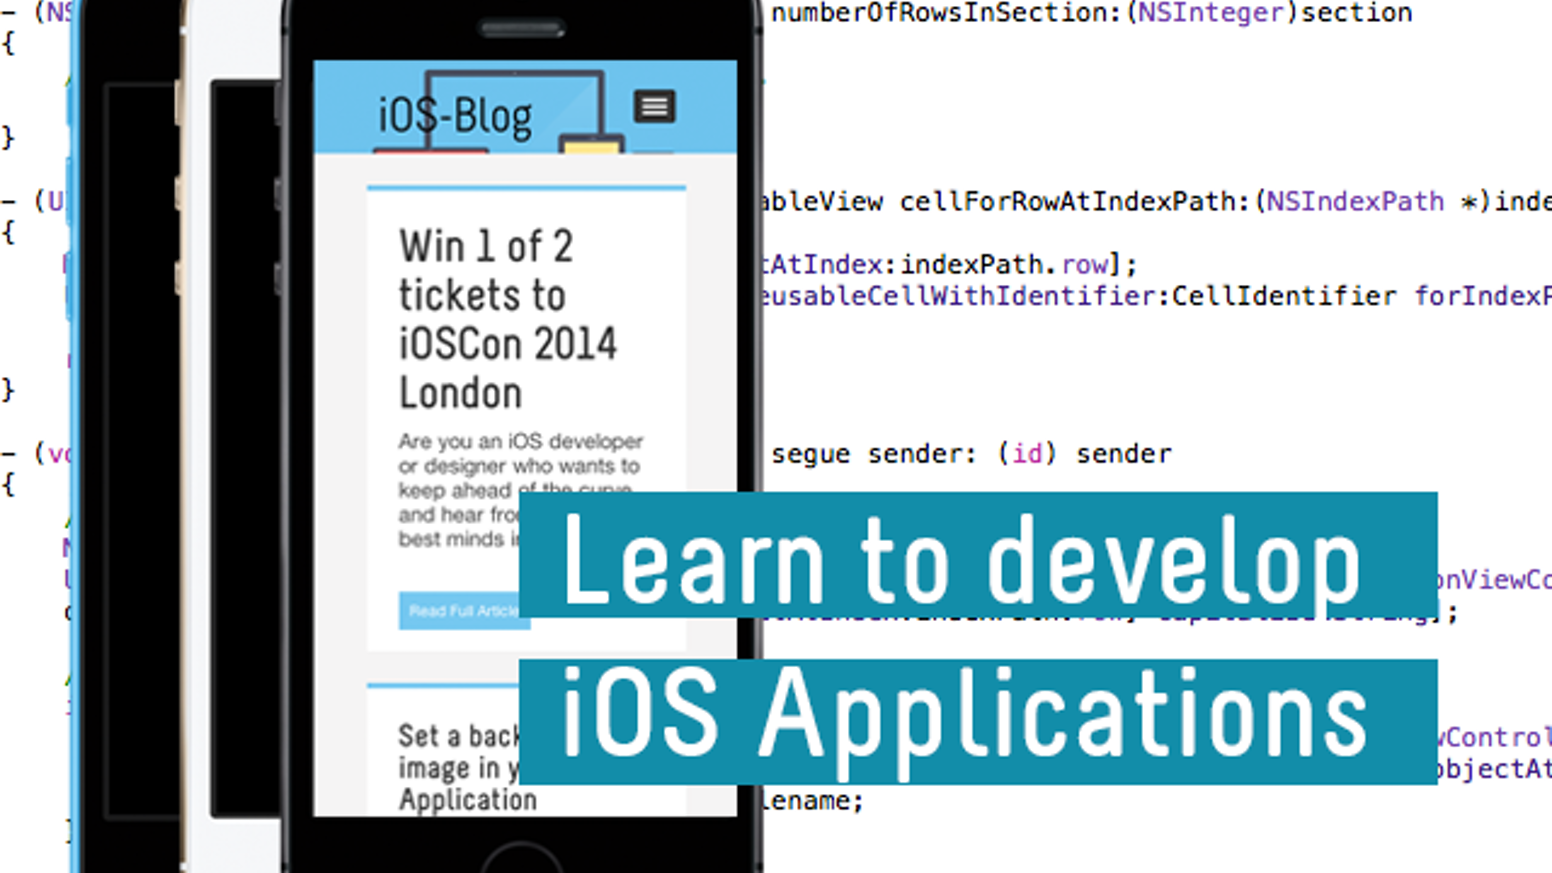 Learn to develop iOS applications for the iPhone/iPad by Mark